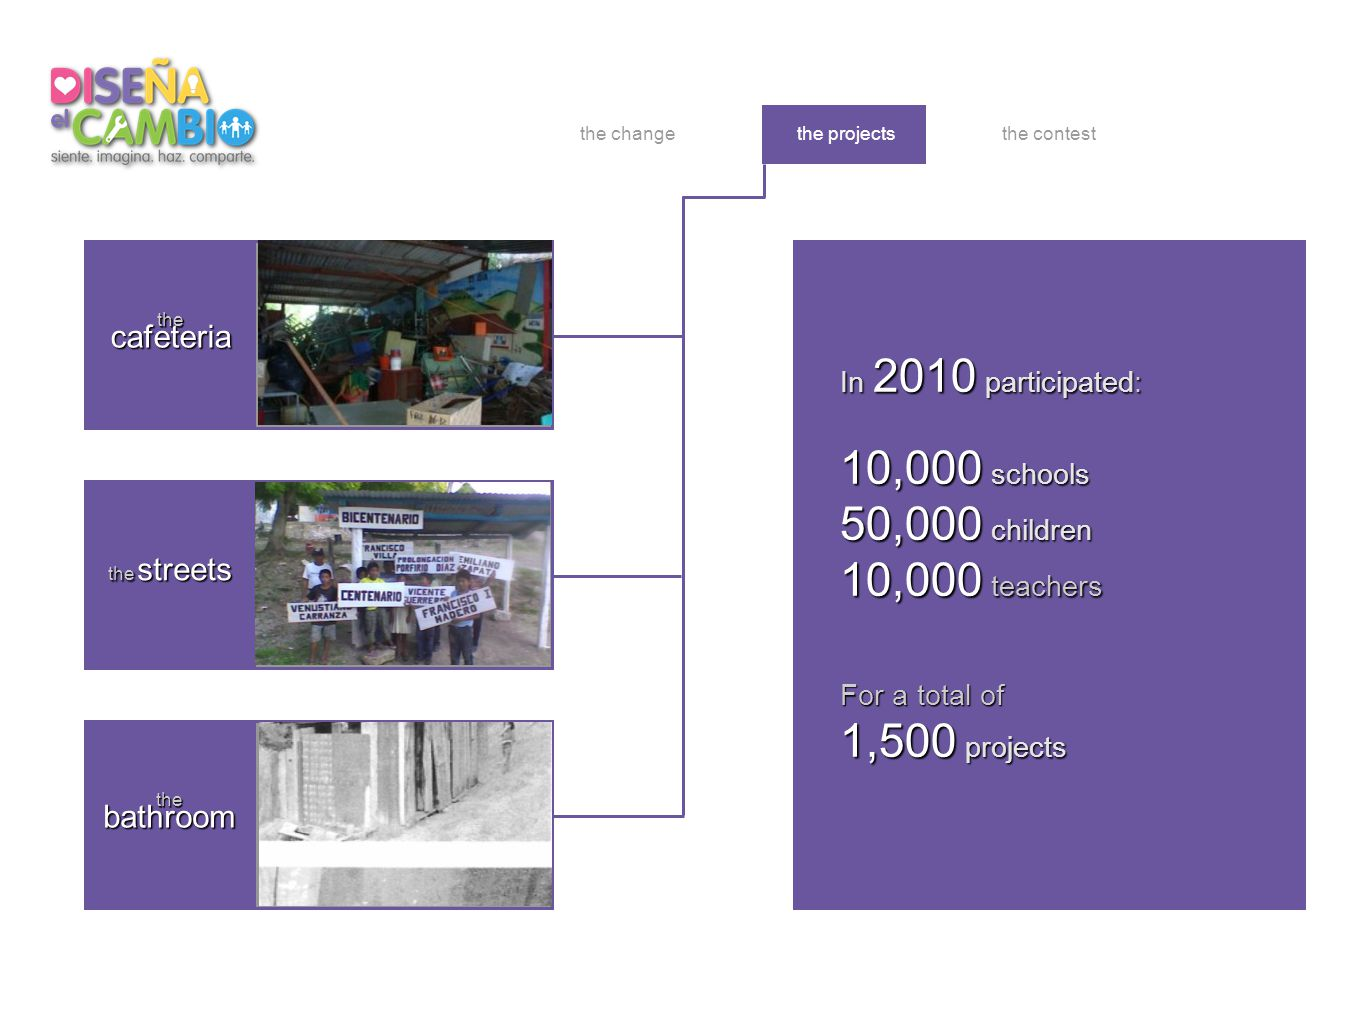 elbaño la cafetería lascalles the projectsthe change In 2010 participated: 10,000 schools 50,000 children 10,000 teachers For a total of 1,500 projects thecafeteria the streets thebathroom the contest